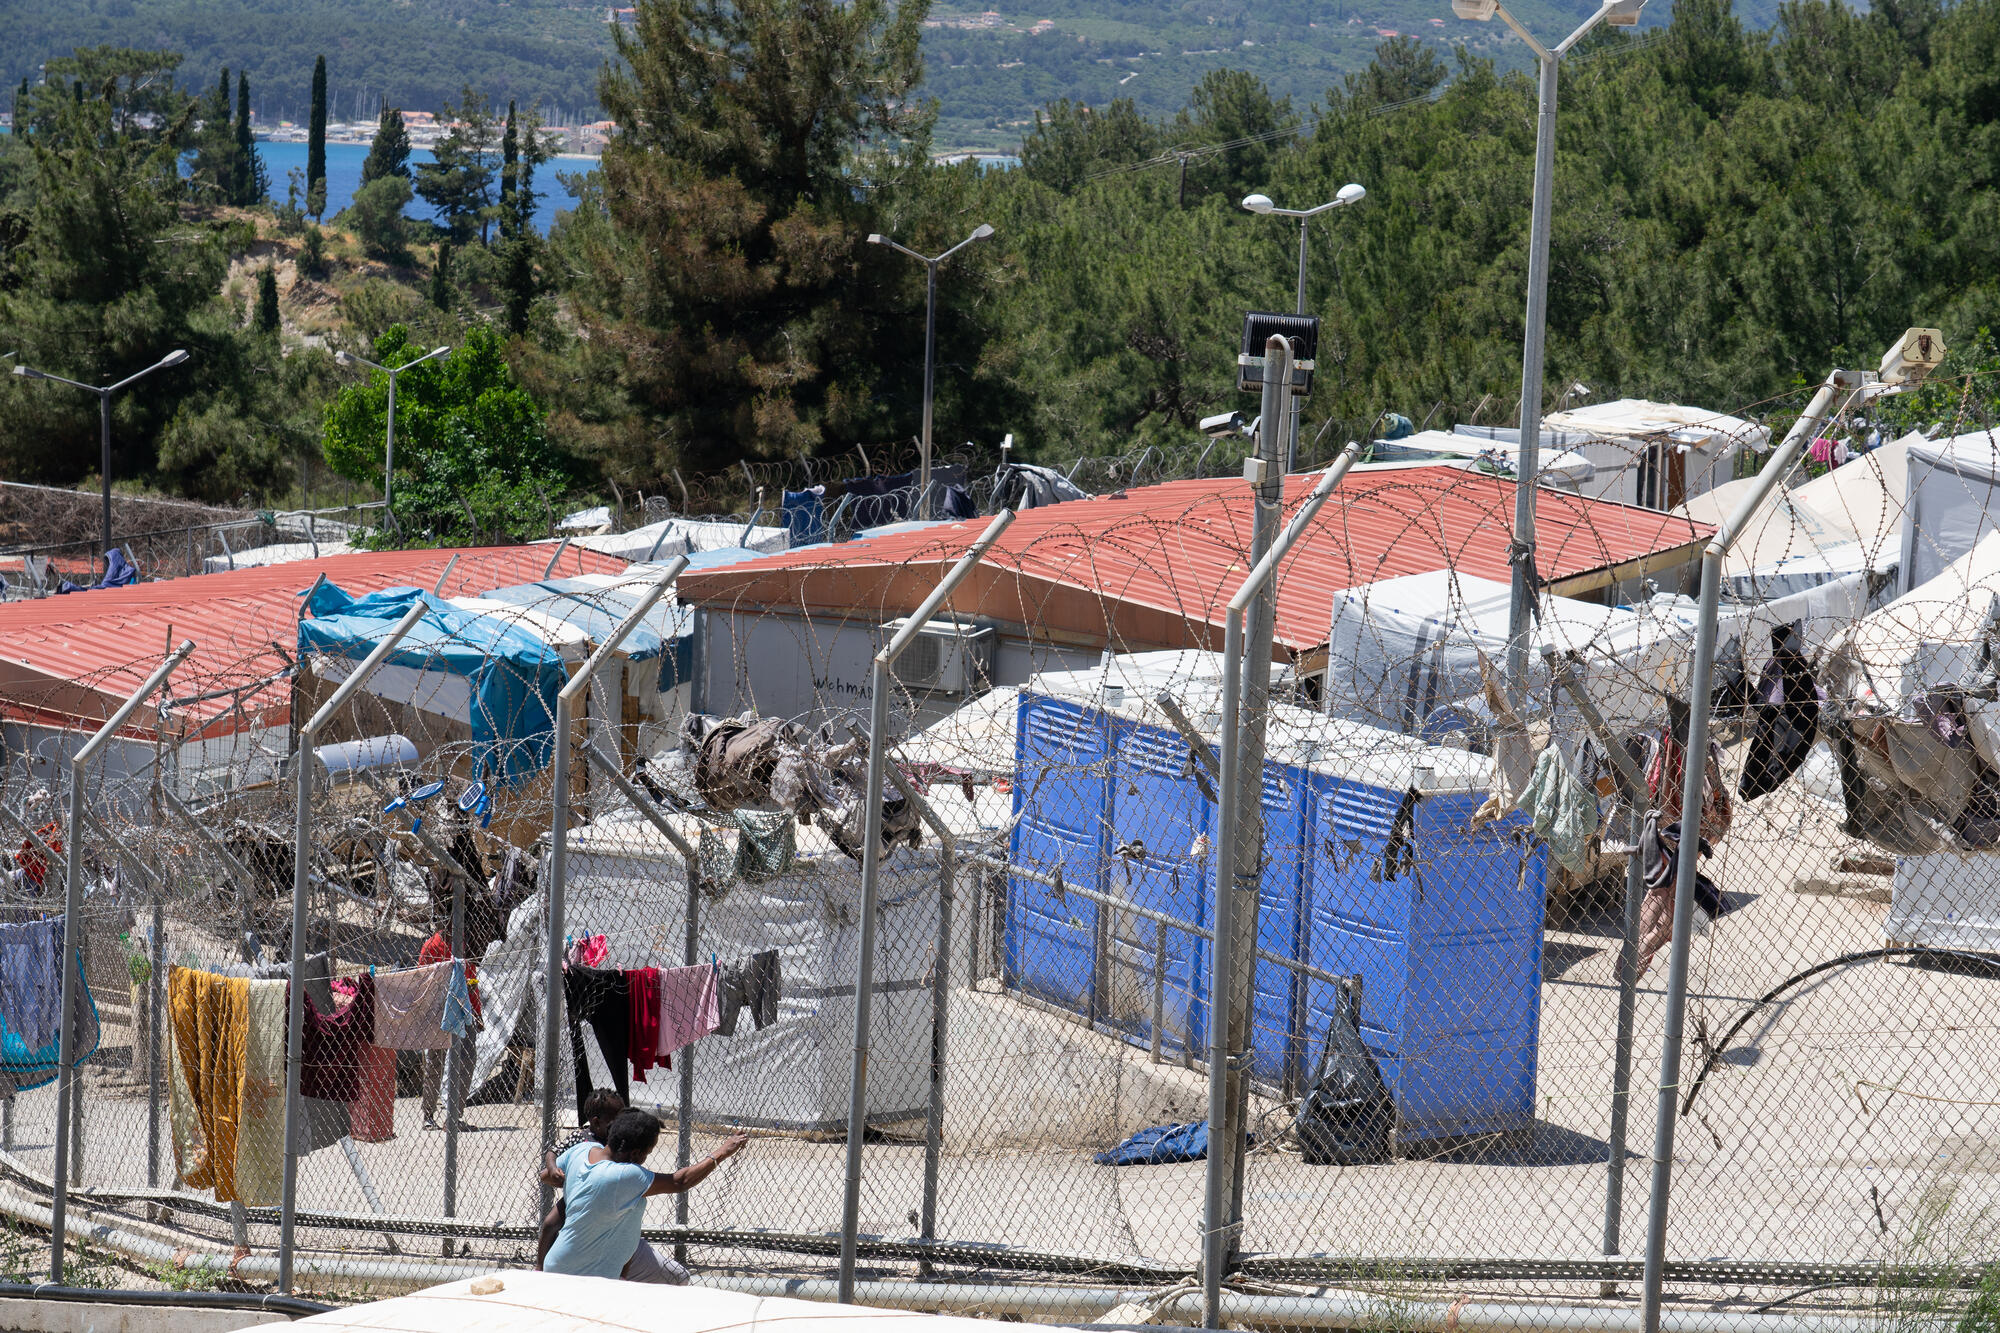 1. Take a stand against European containment policies on the Greek islands